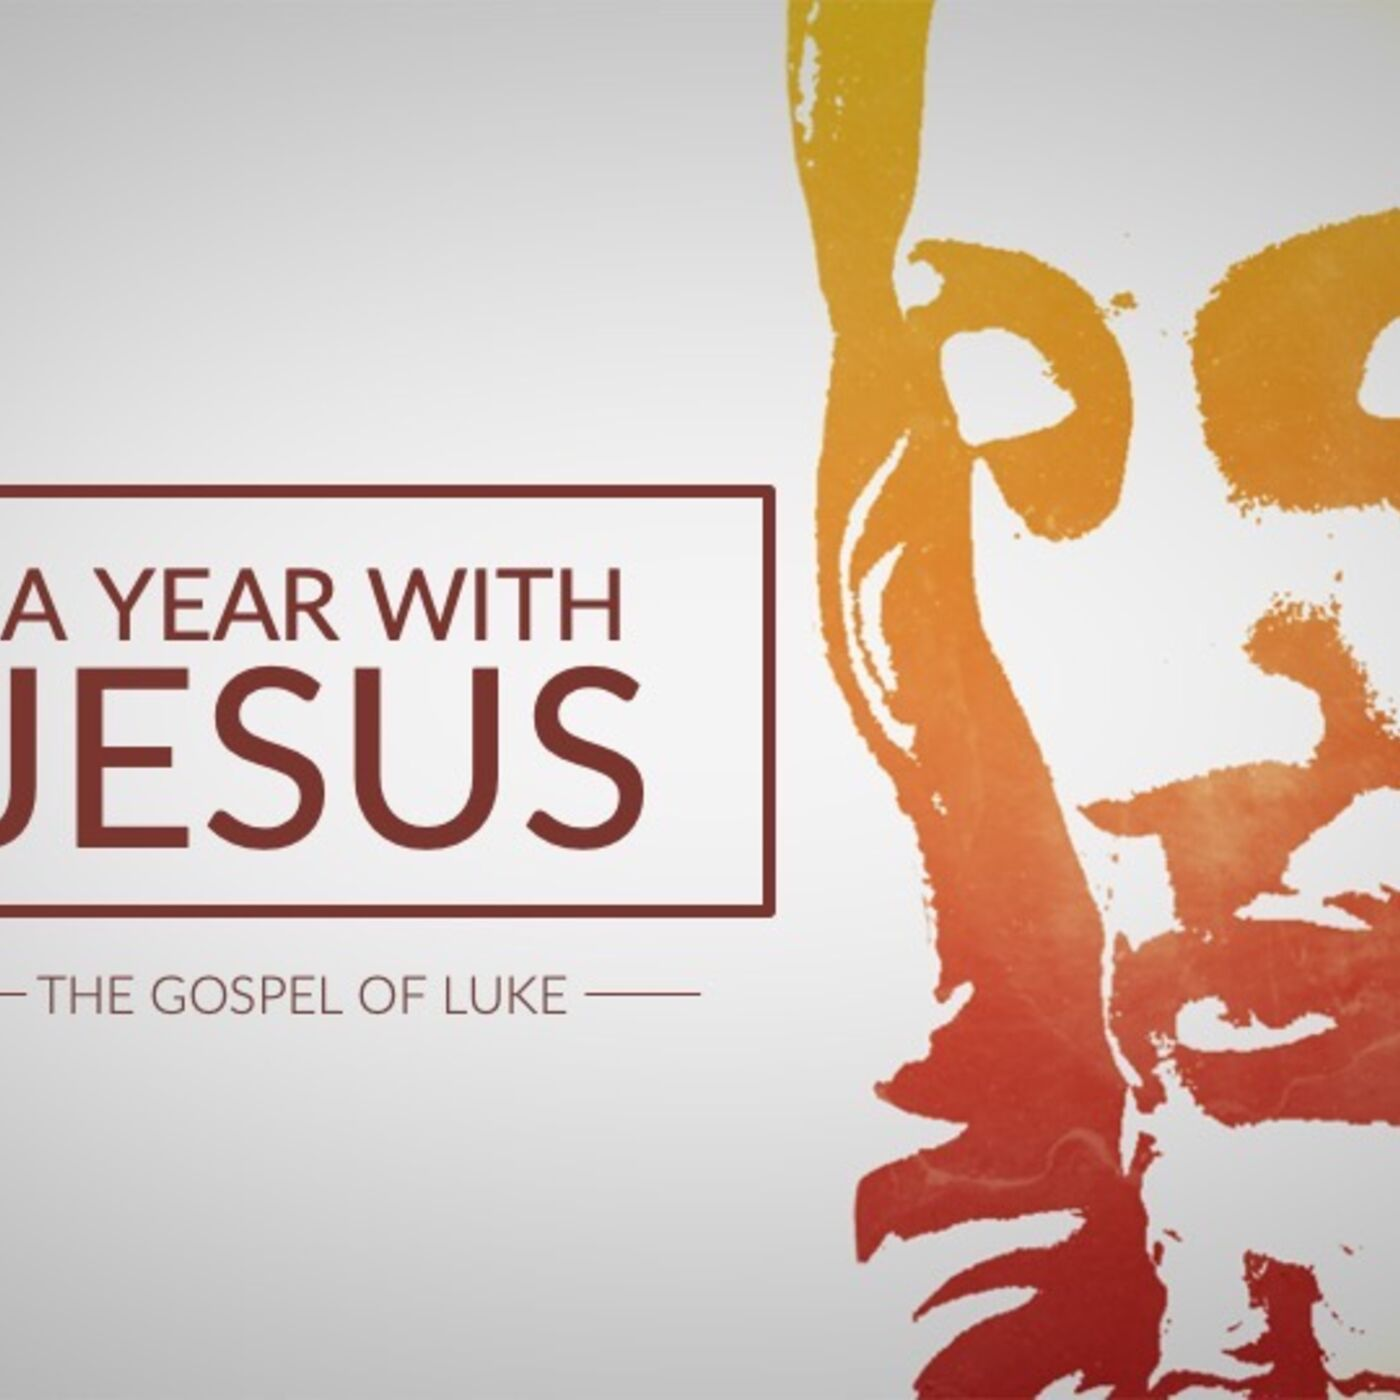 A Year With Jesus: Lessons in Prayer Part 2 (Luke 11:5-13)